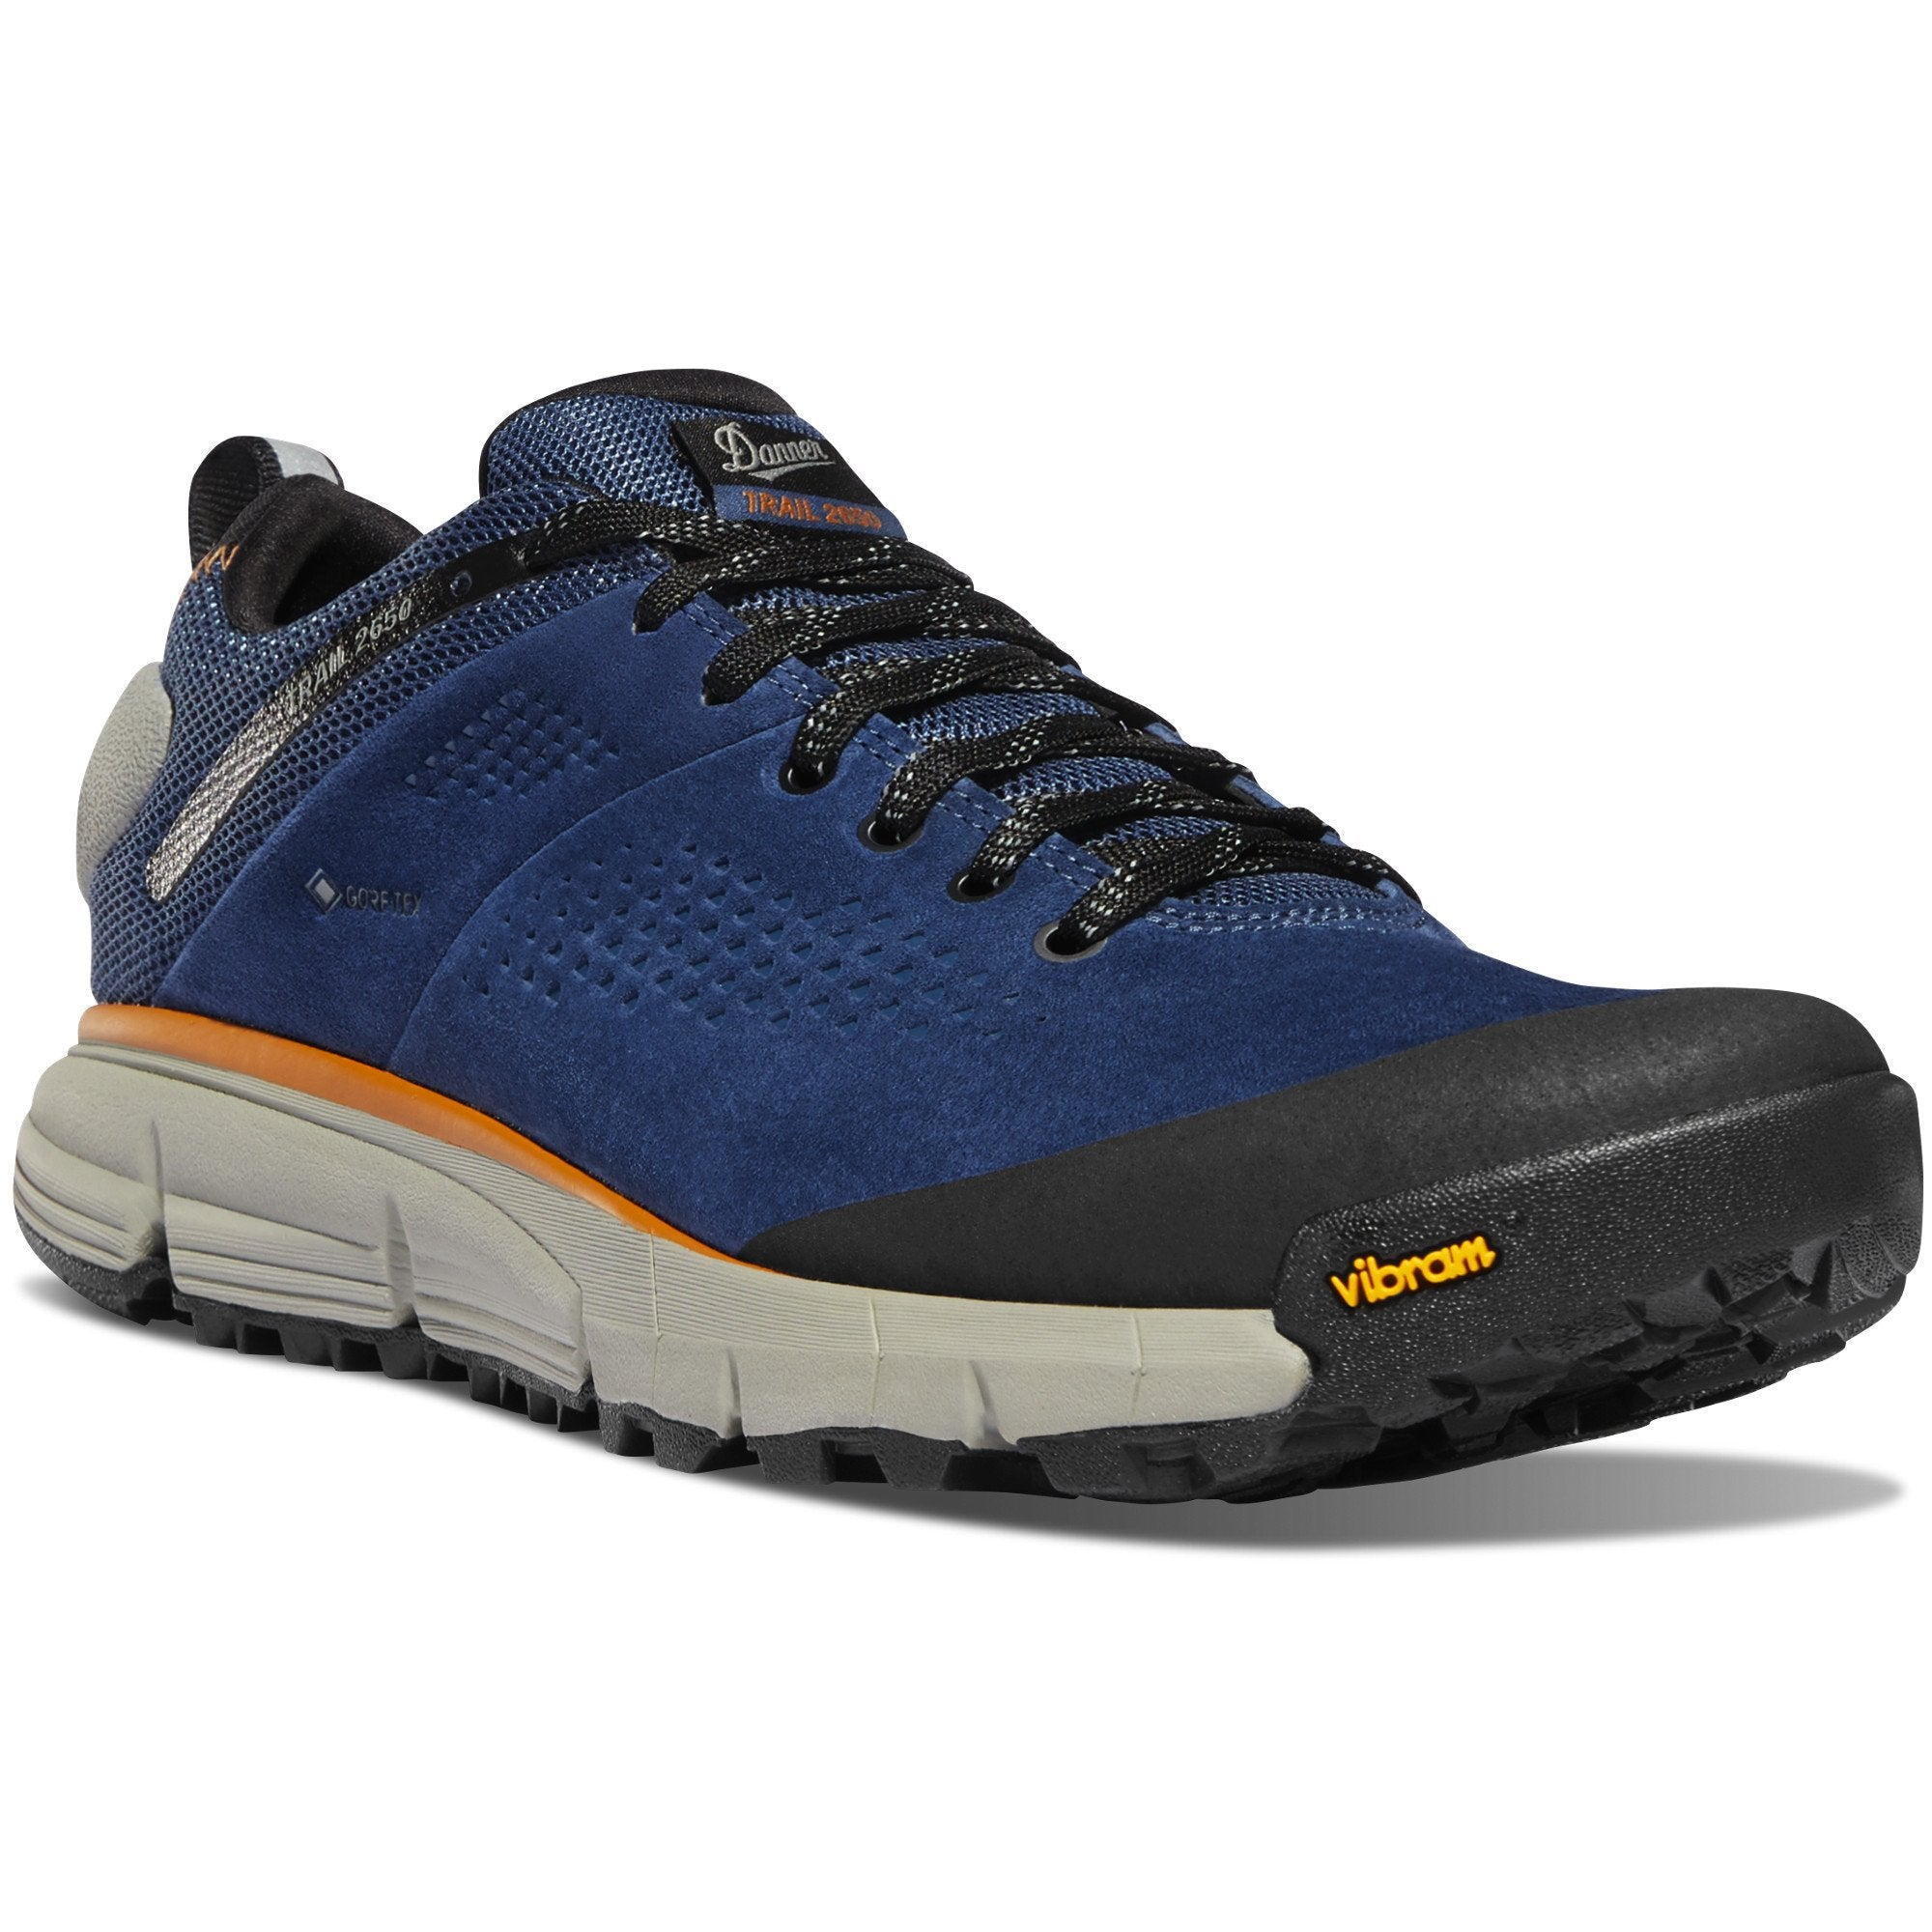 "Trail 2650 3"" Gore-Tex Hiking Shoe in Denim Blue color from the side view"